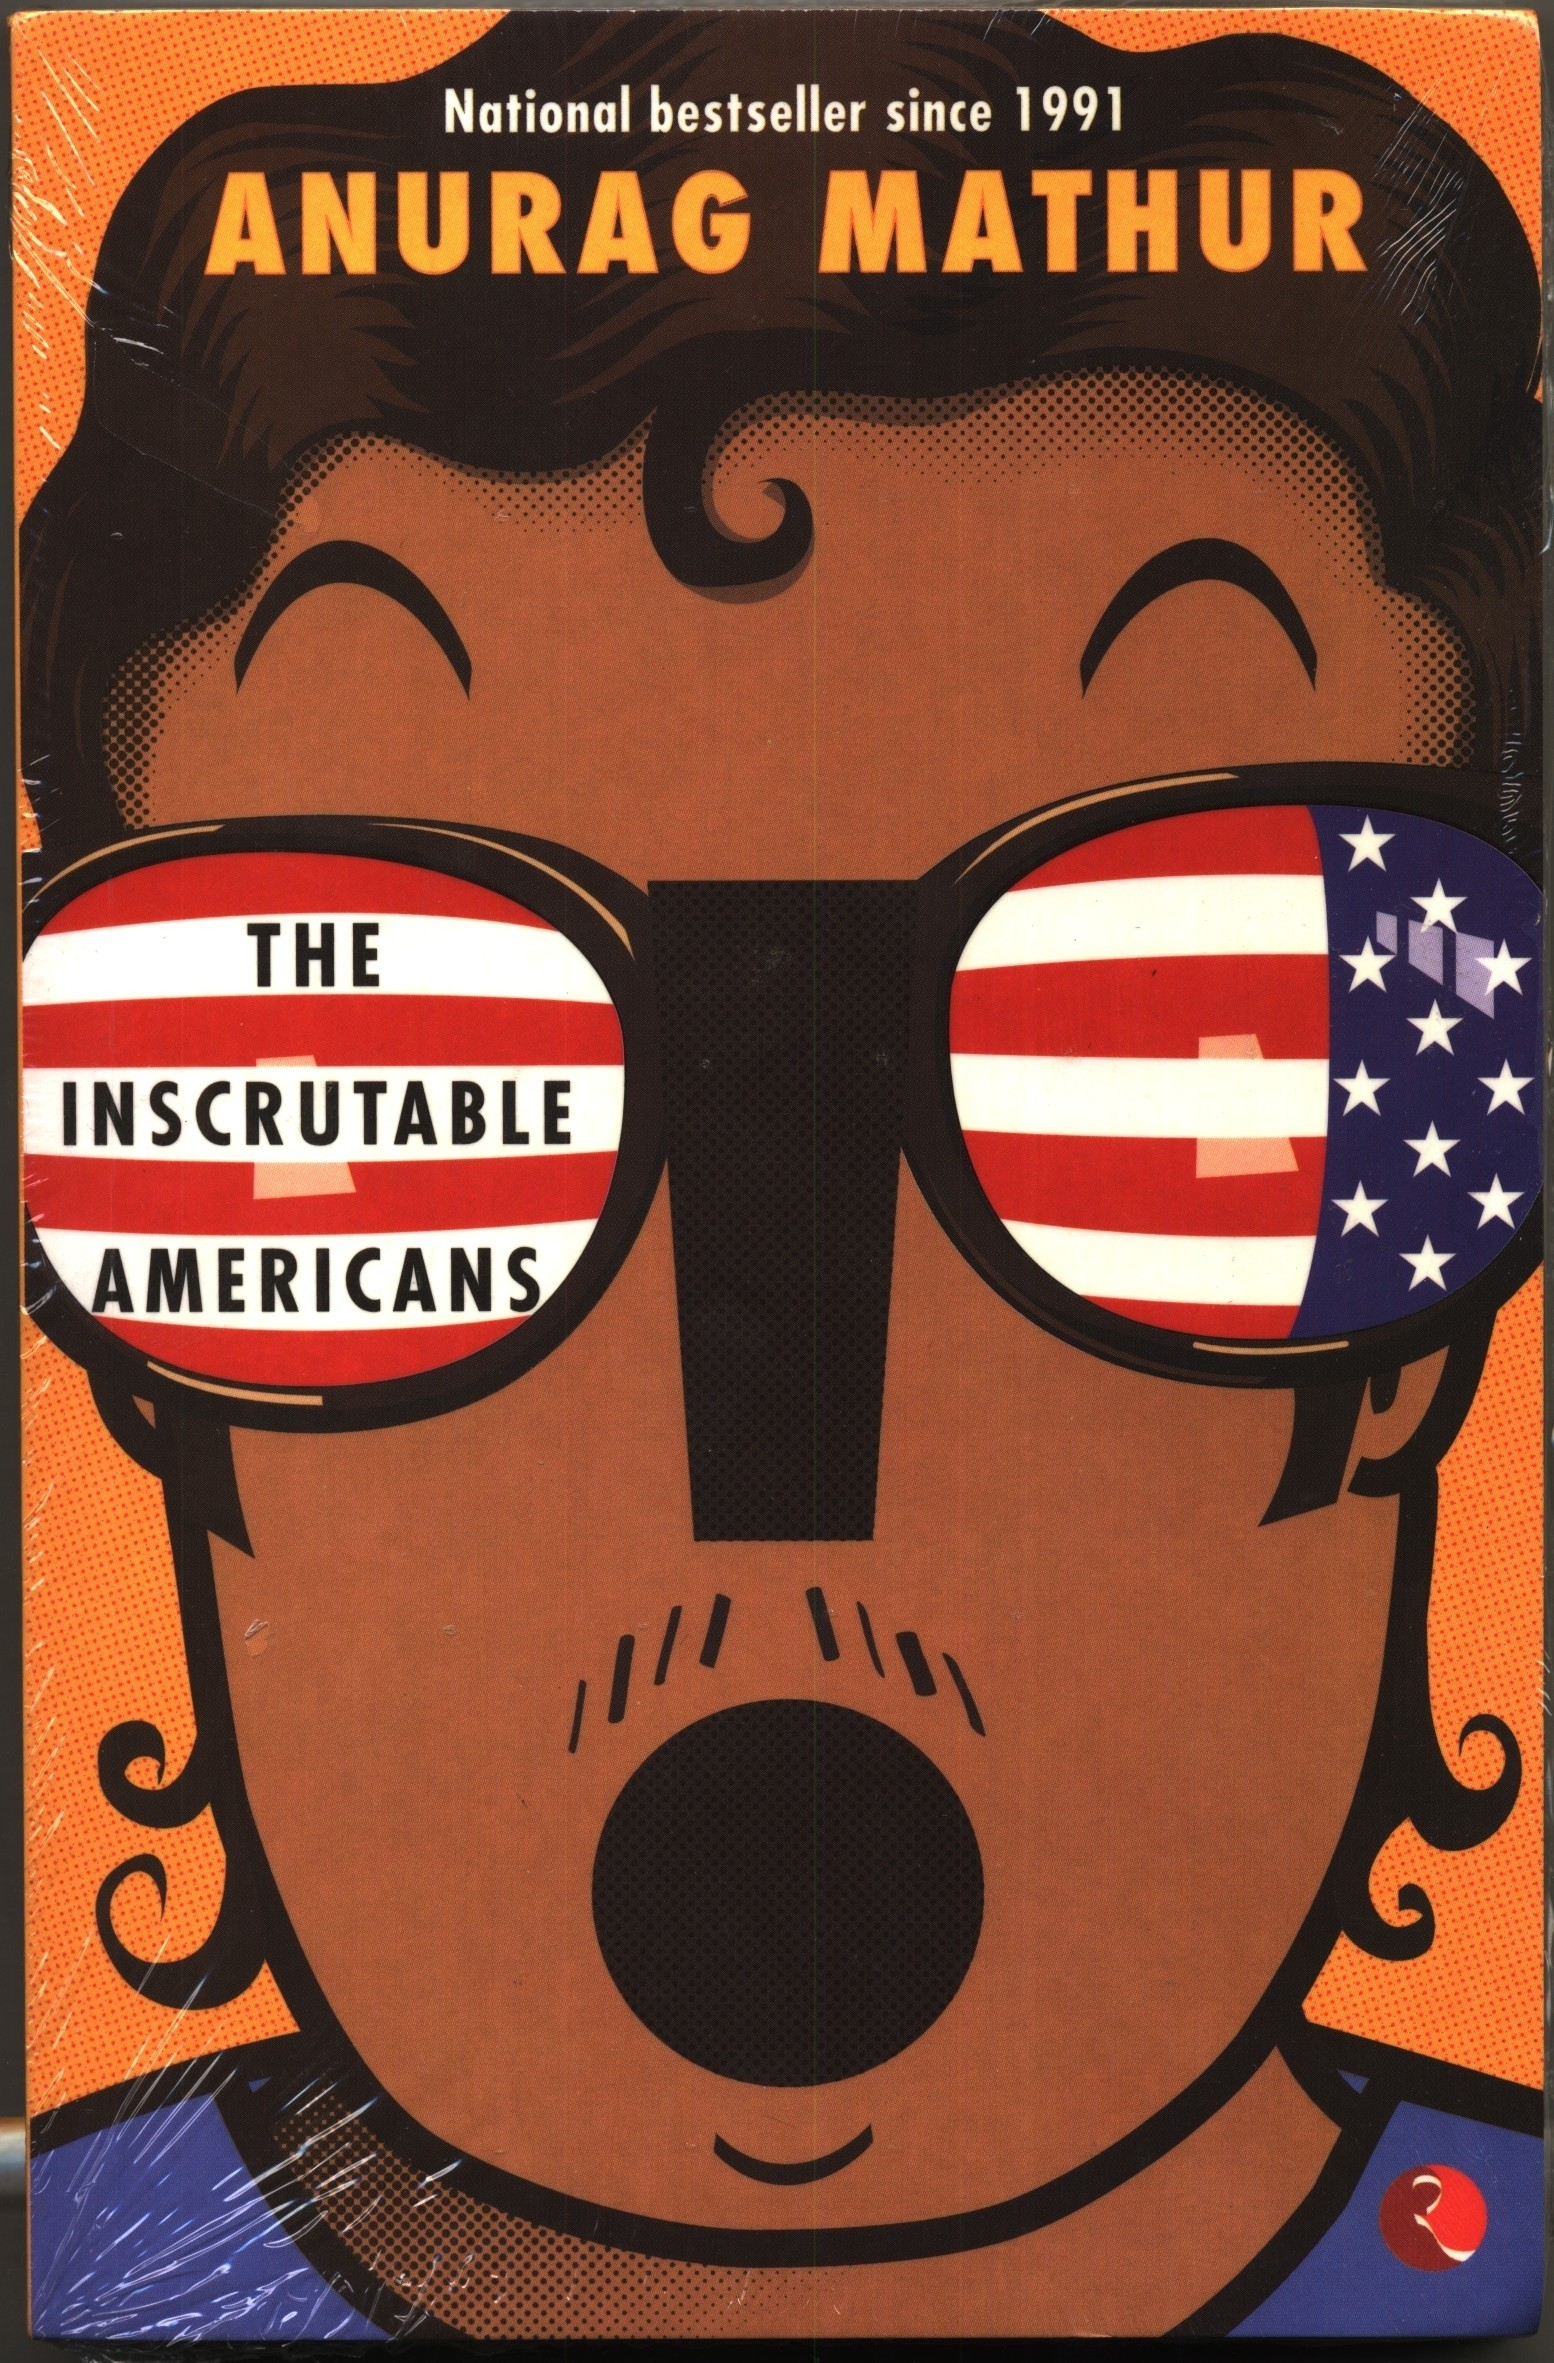 the inscrutable americans by anurag mathur pdf download